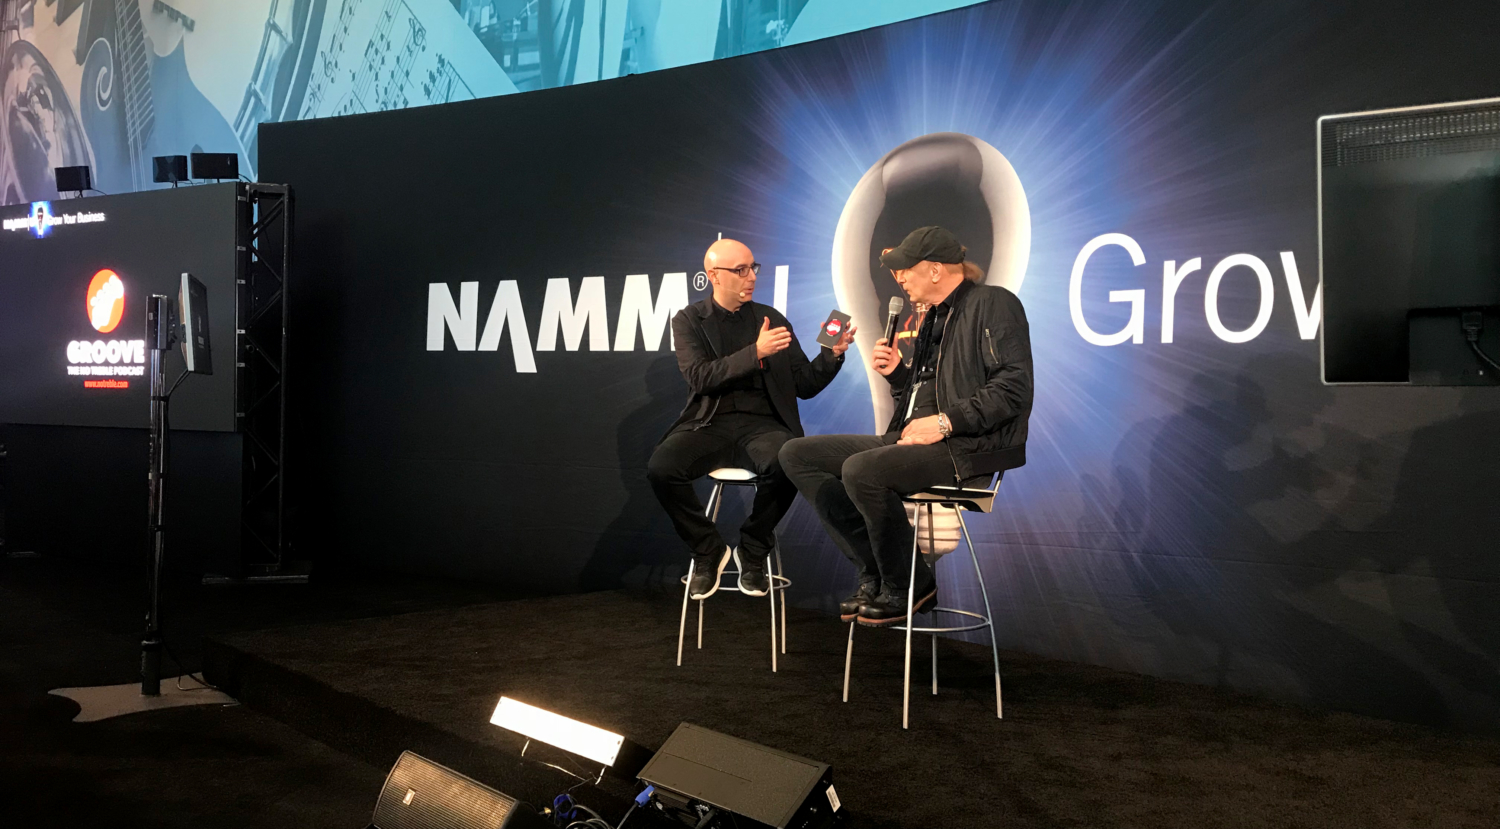 Billy Sheehan: Live Groove NAMM 2018